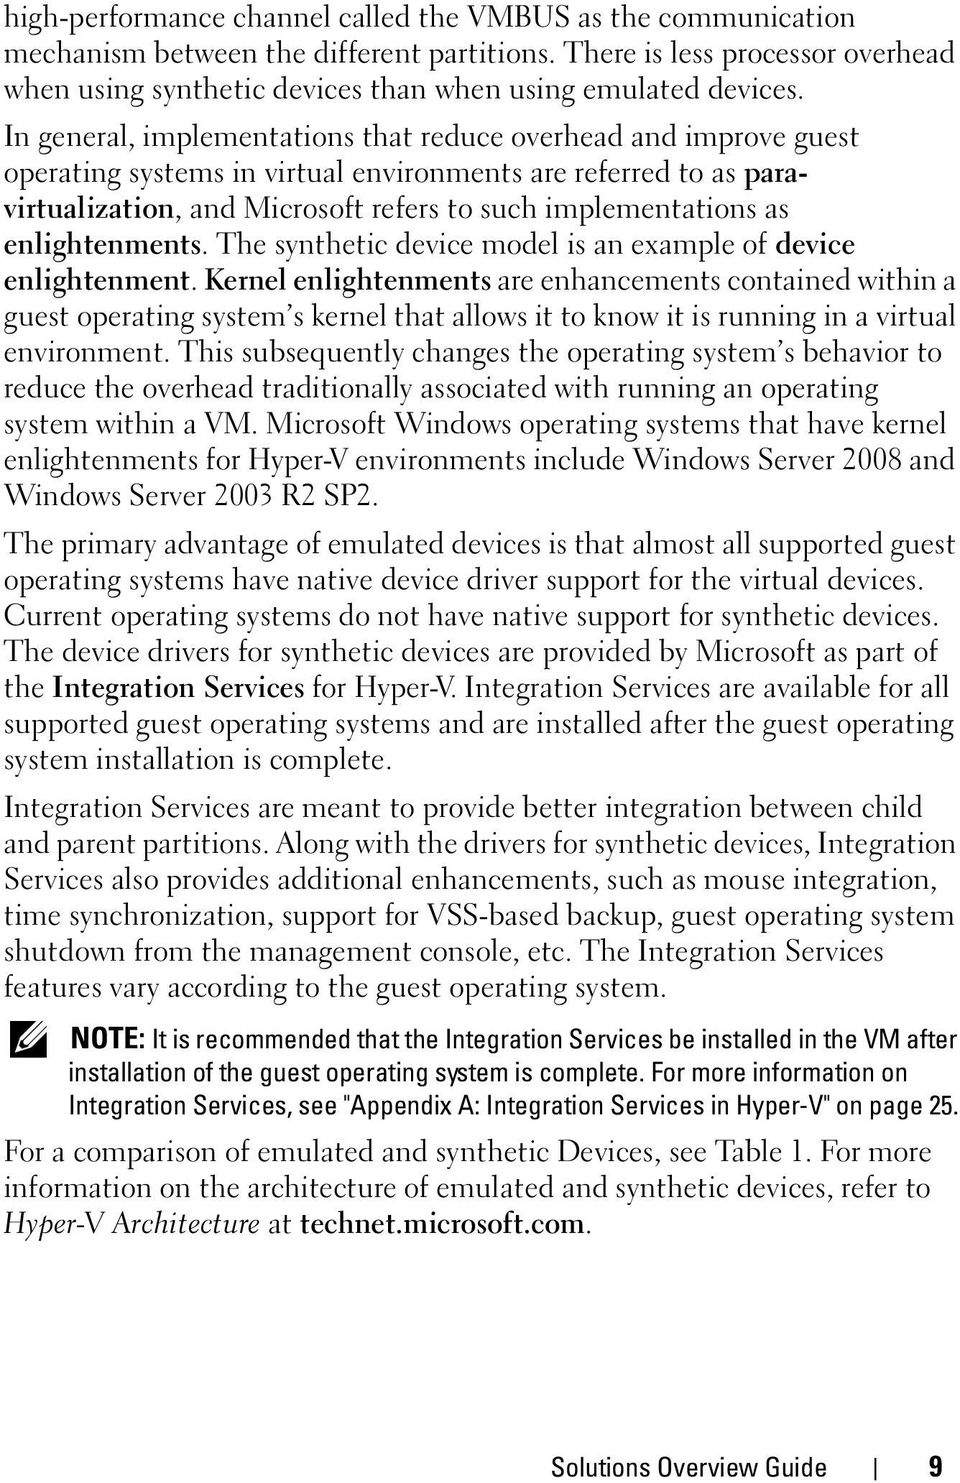 In general, implementations that reduce overhead and improve guest operating systems in virtual environments are referred to as paravirtualization, and Microsoft refers to such implementations as